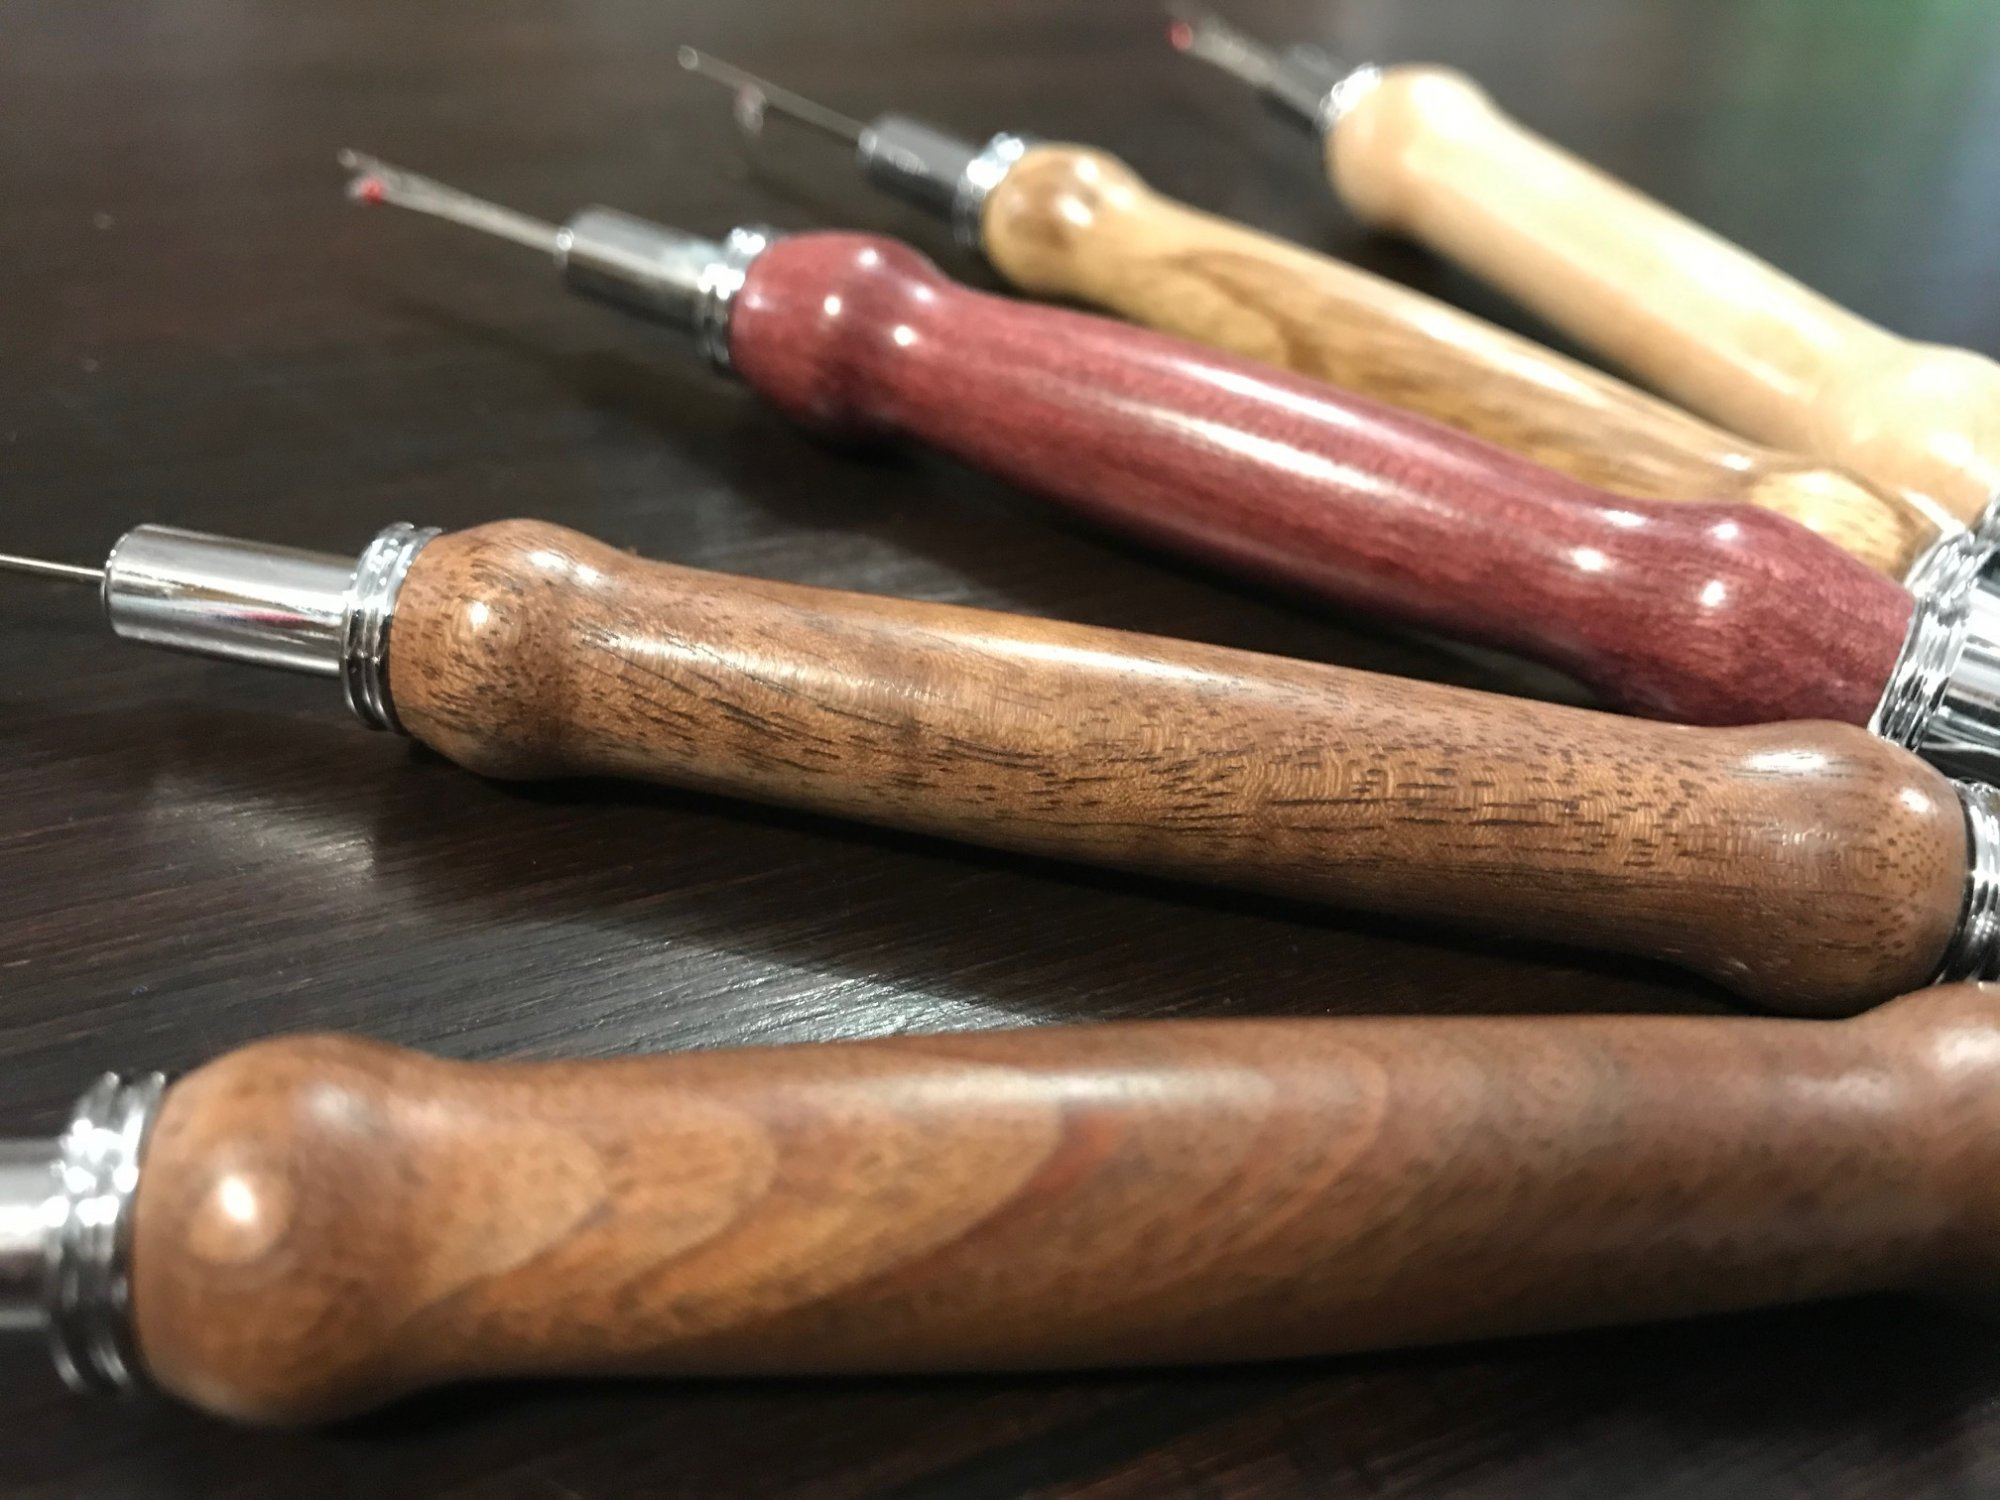 Wood Seam Ripper Custom and Awl made by Pens By Pugh